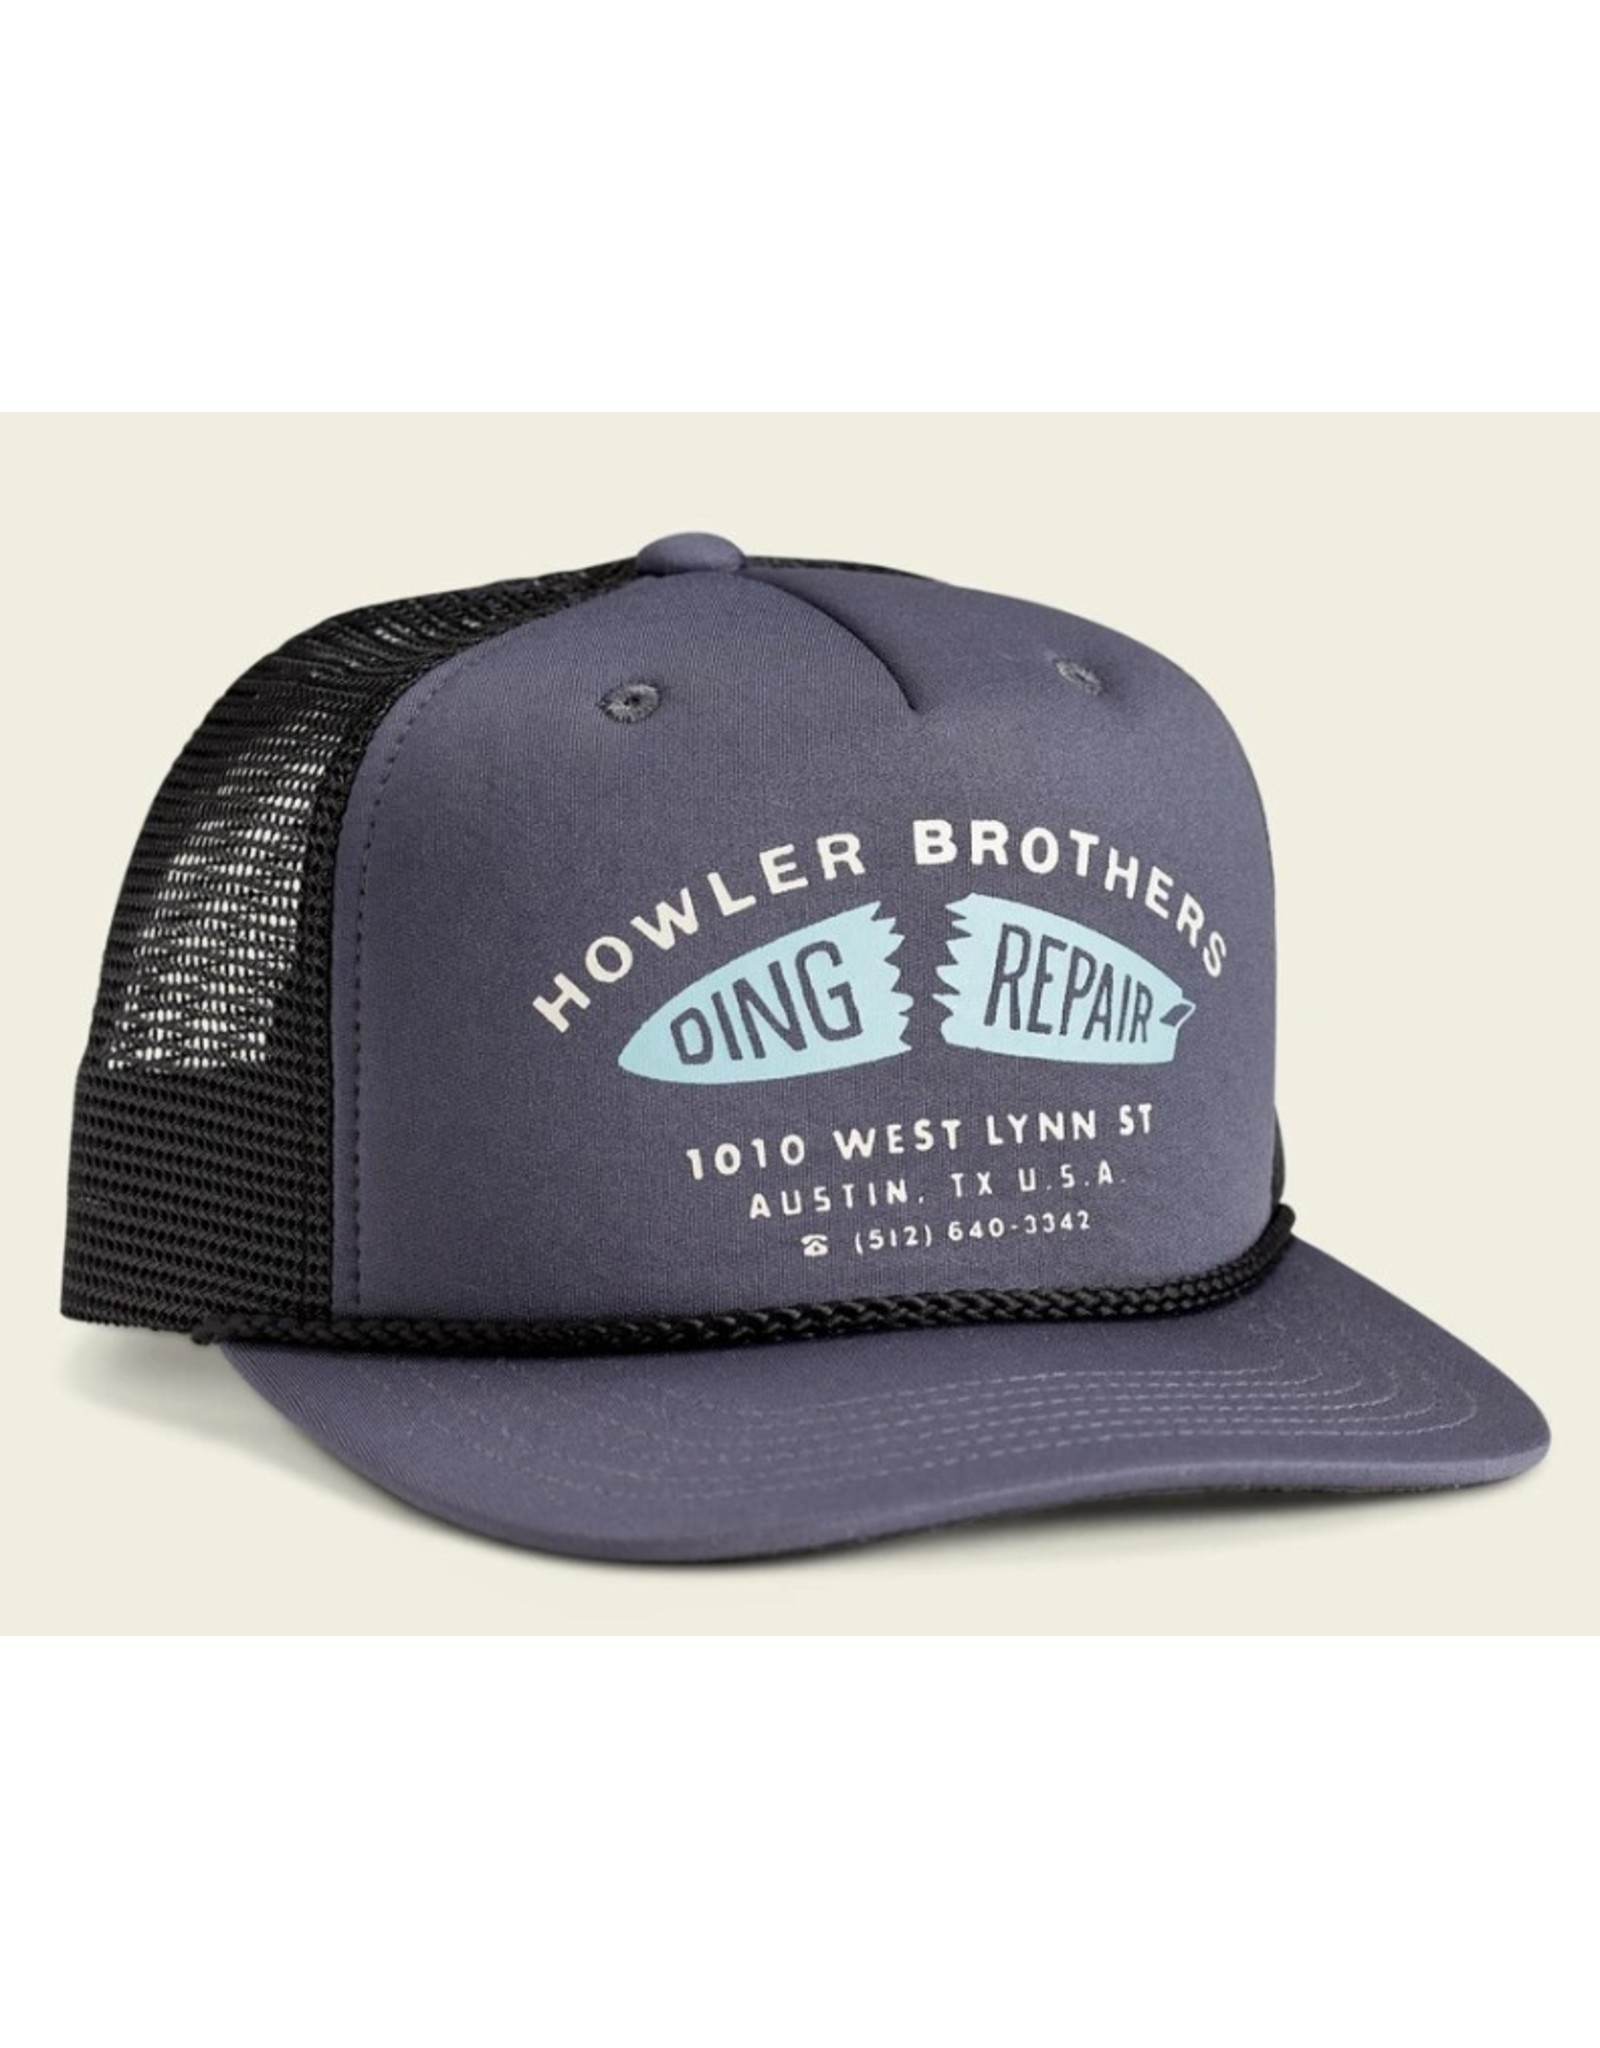 Howler Bros HB Ding Repair Structured Snapback - Charcoal